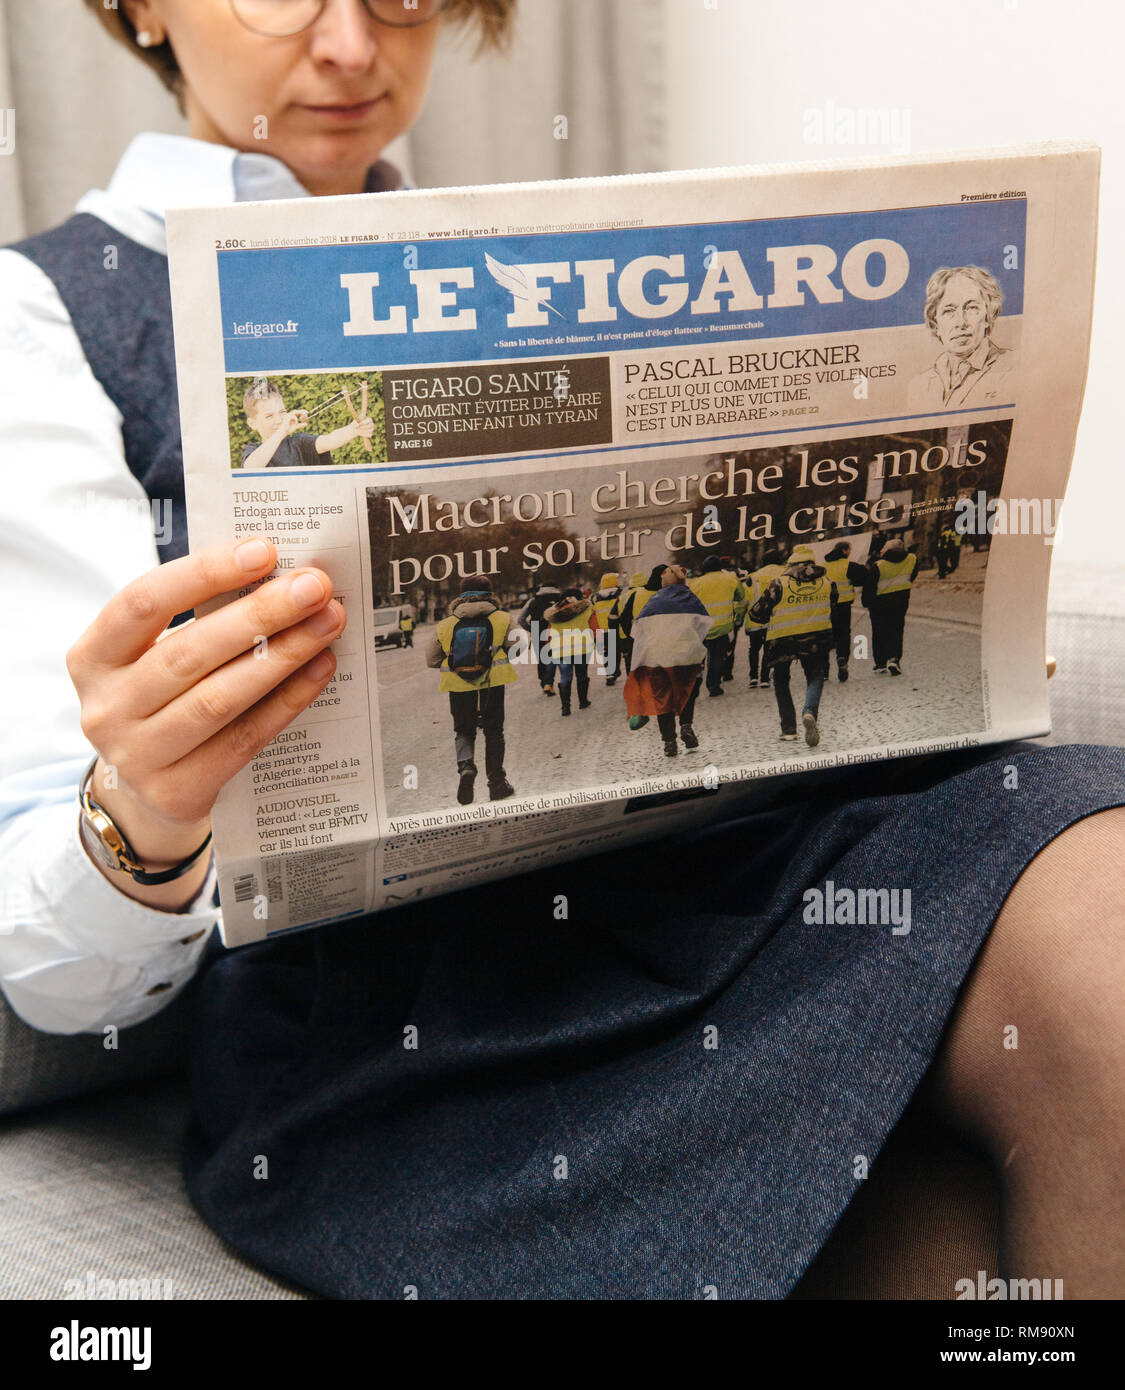 Paris, France - Dec 18, 2018: French woman reading Le Figaro